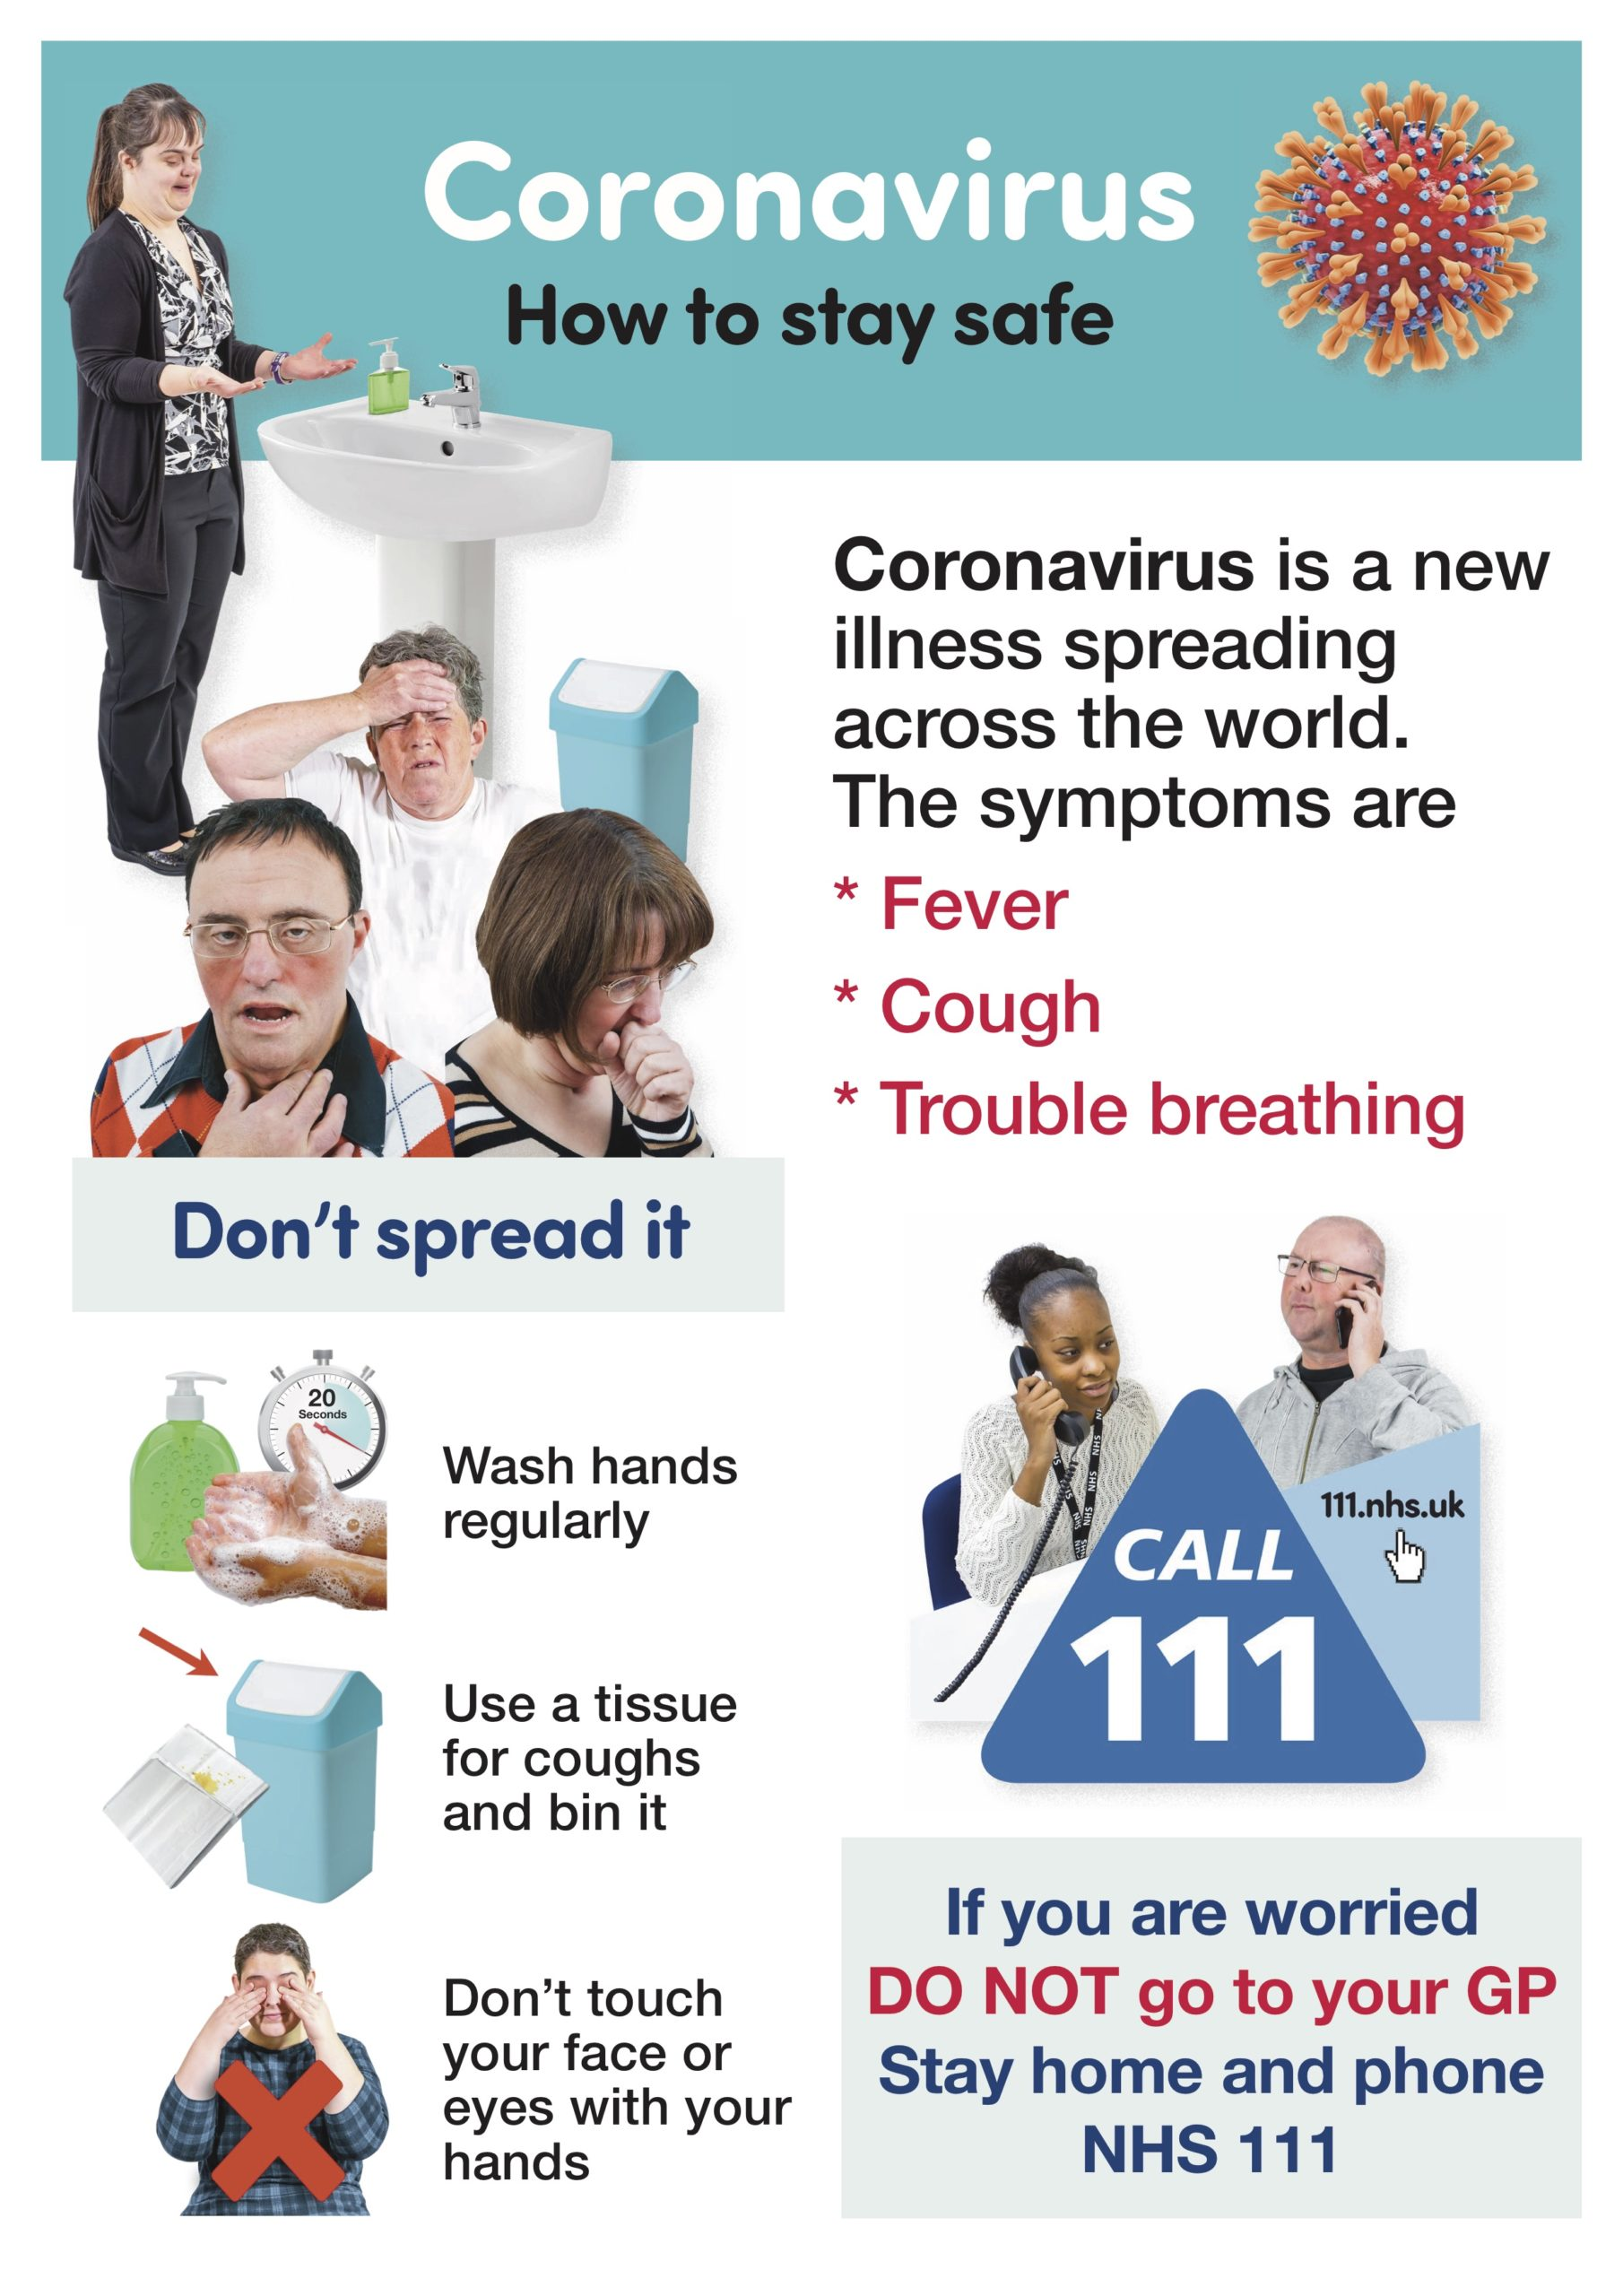 Coronavirus-Poster-How to stay safe-easy read